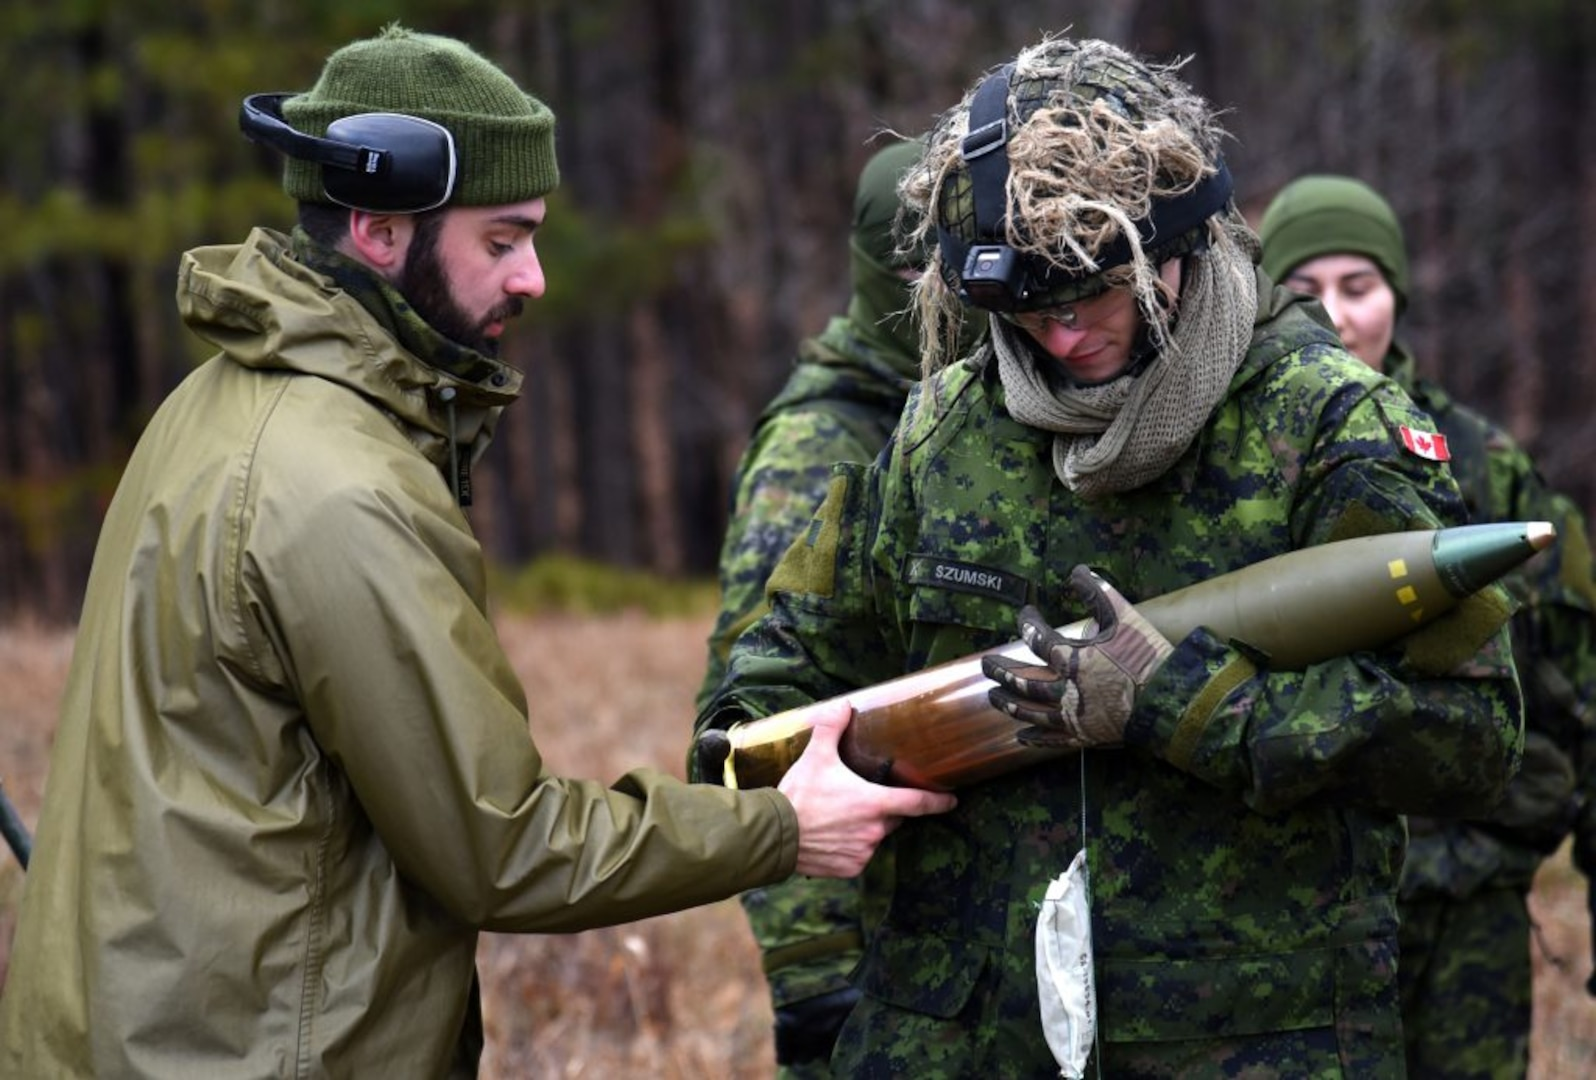 Canadian forces conduct Exercise Fighting Warrior at Fort Pickett